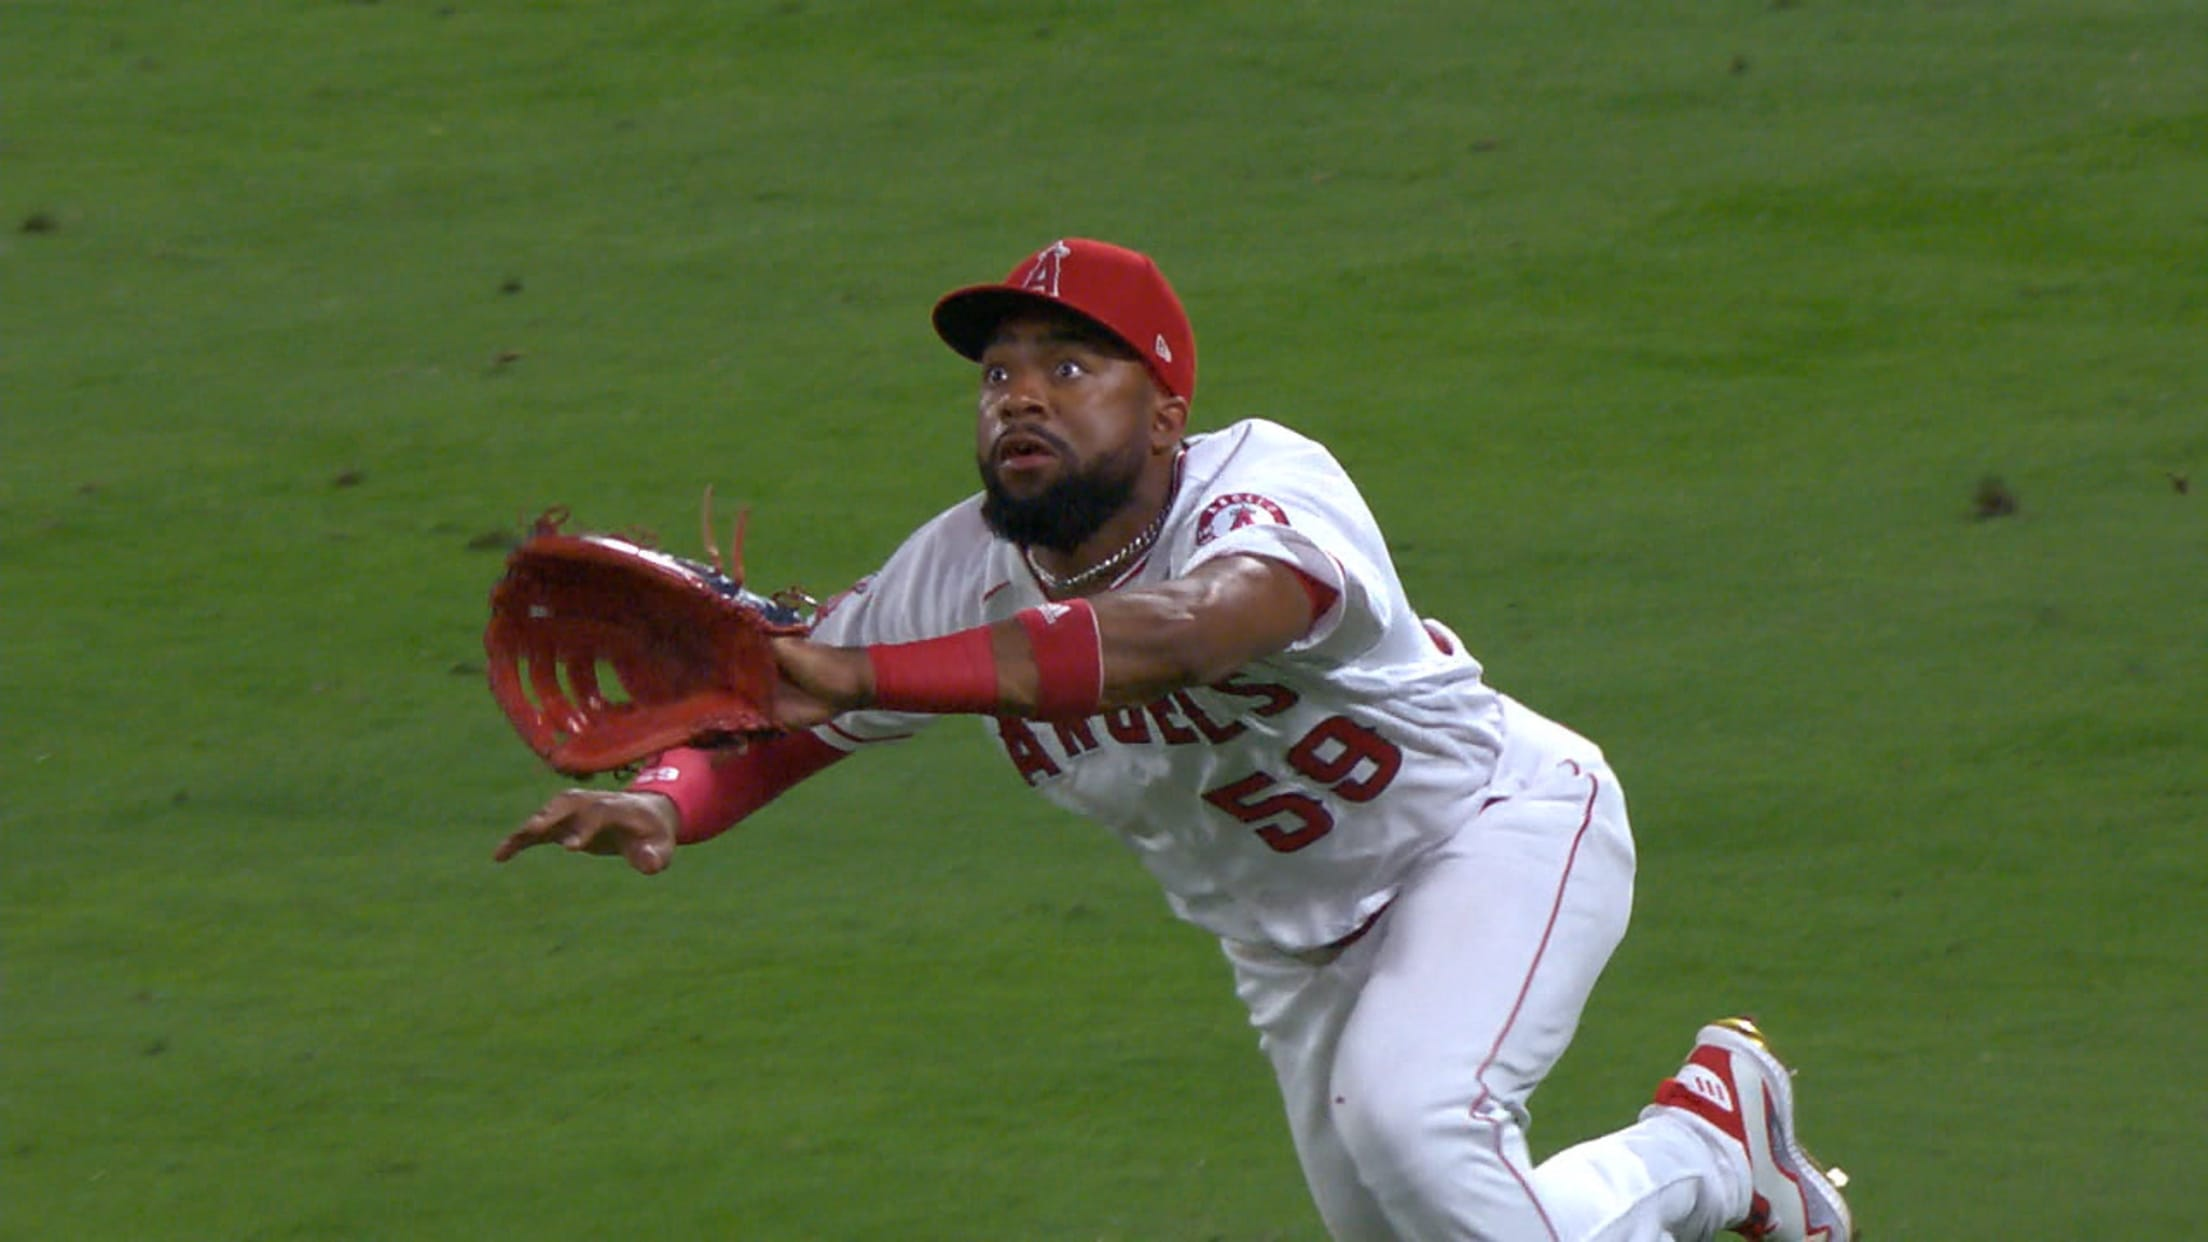 Jo Adell's awesome dive